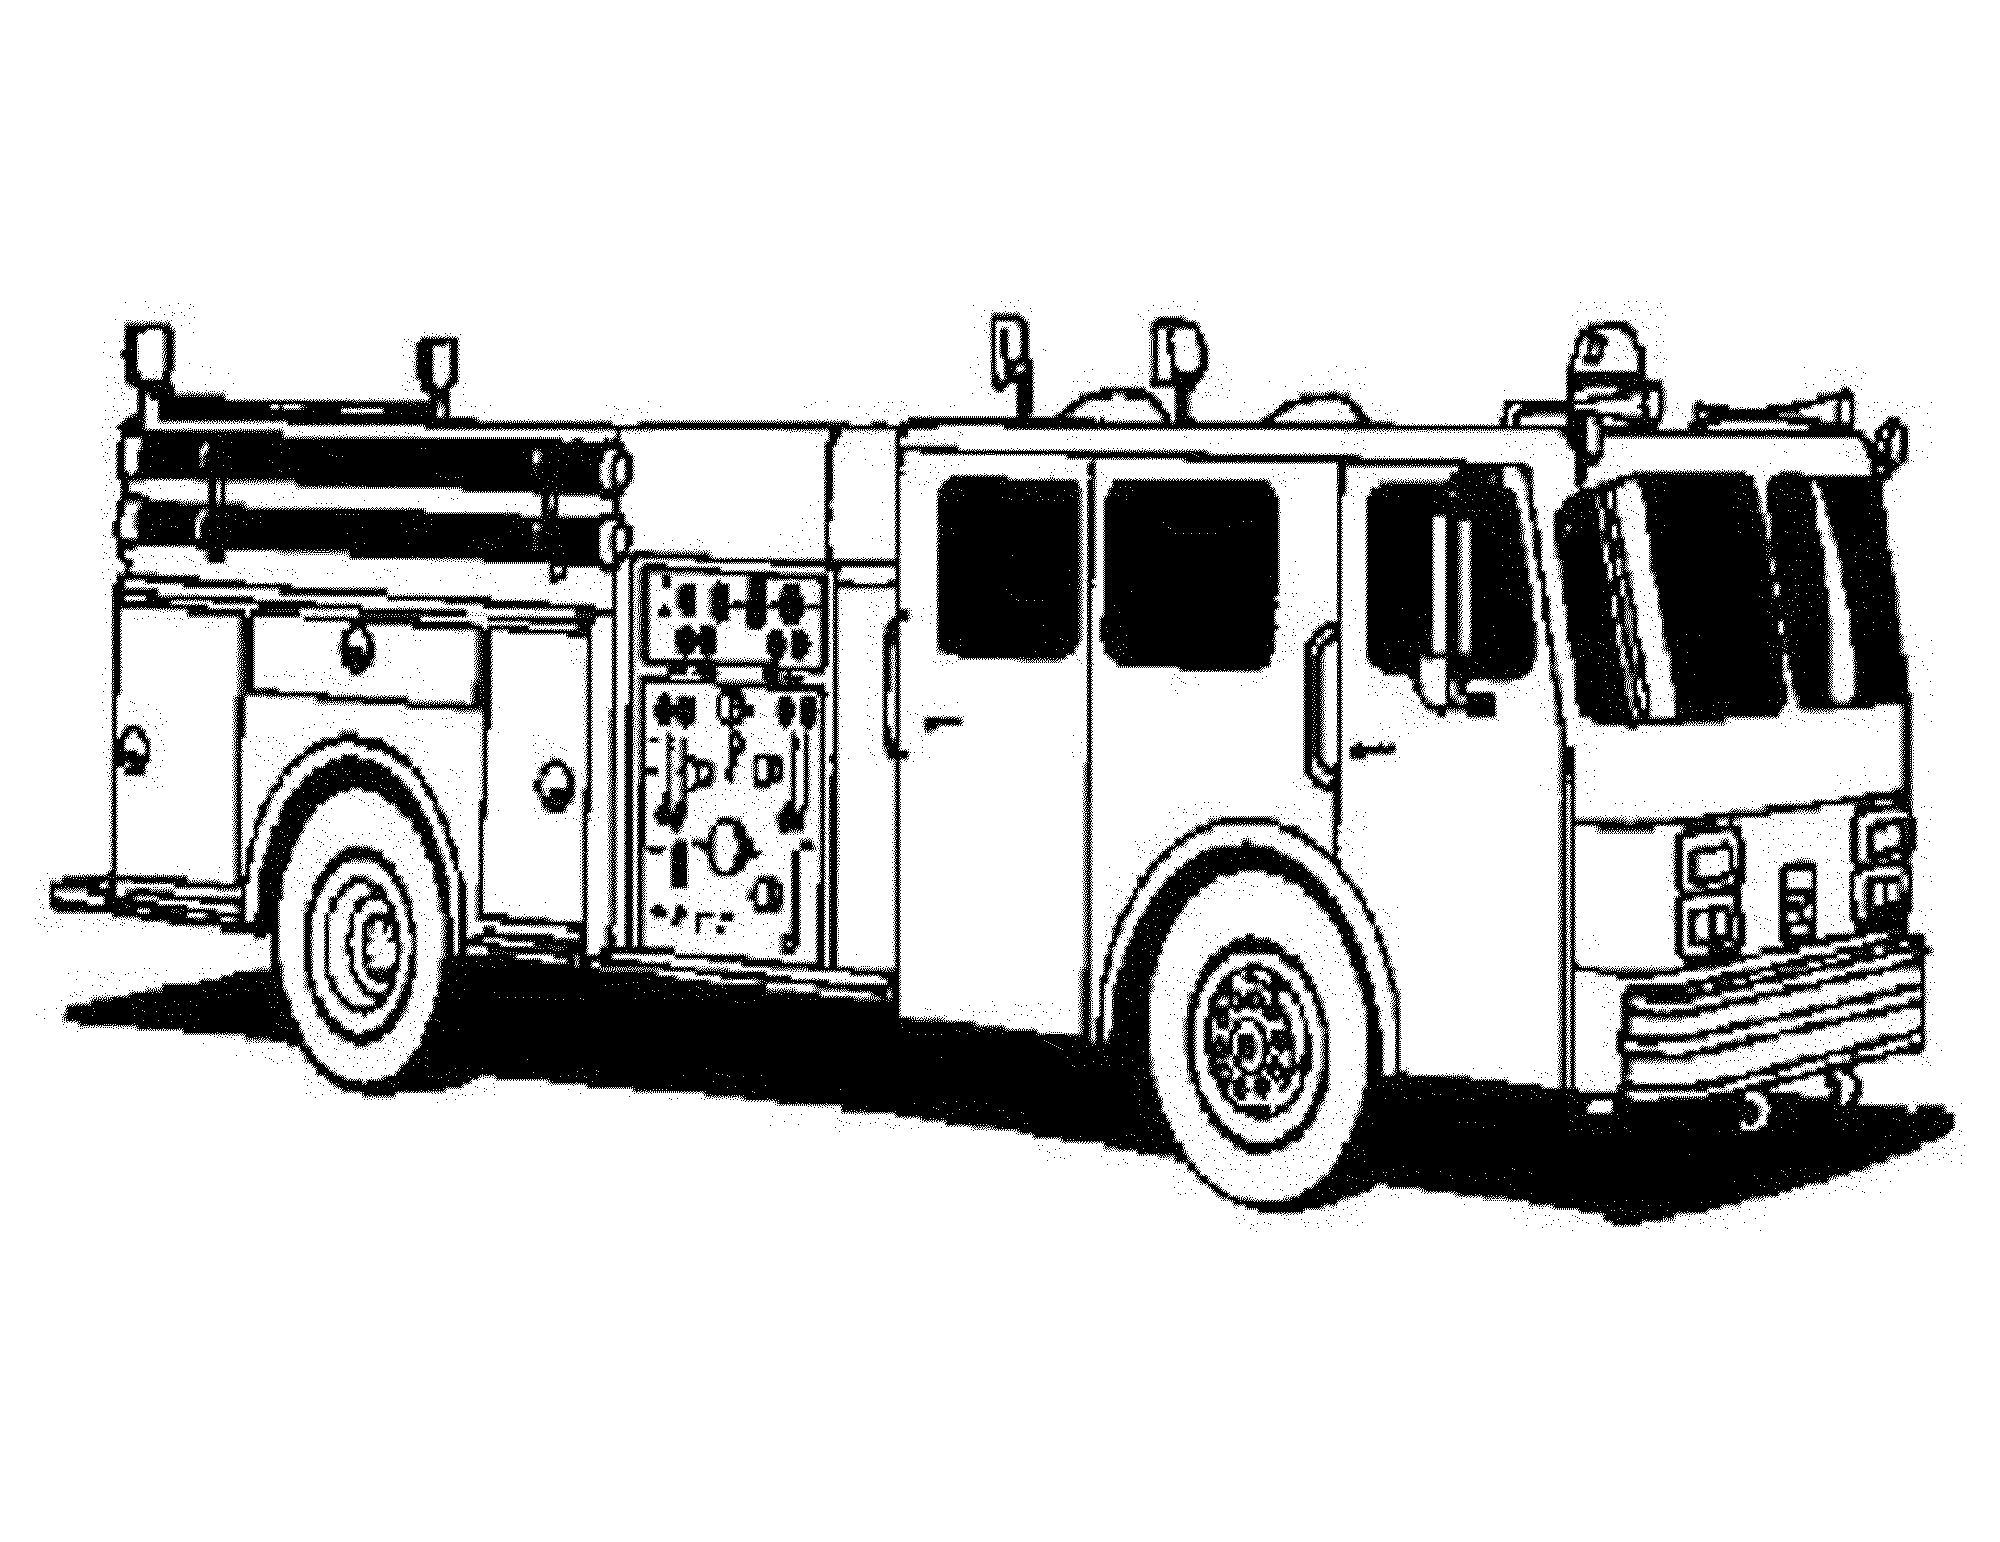 coloring page fire truck free printable fire truck coloring pages for kids coloring page truck fire